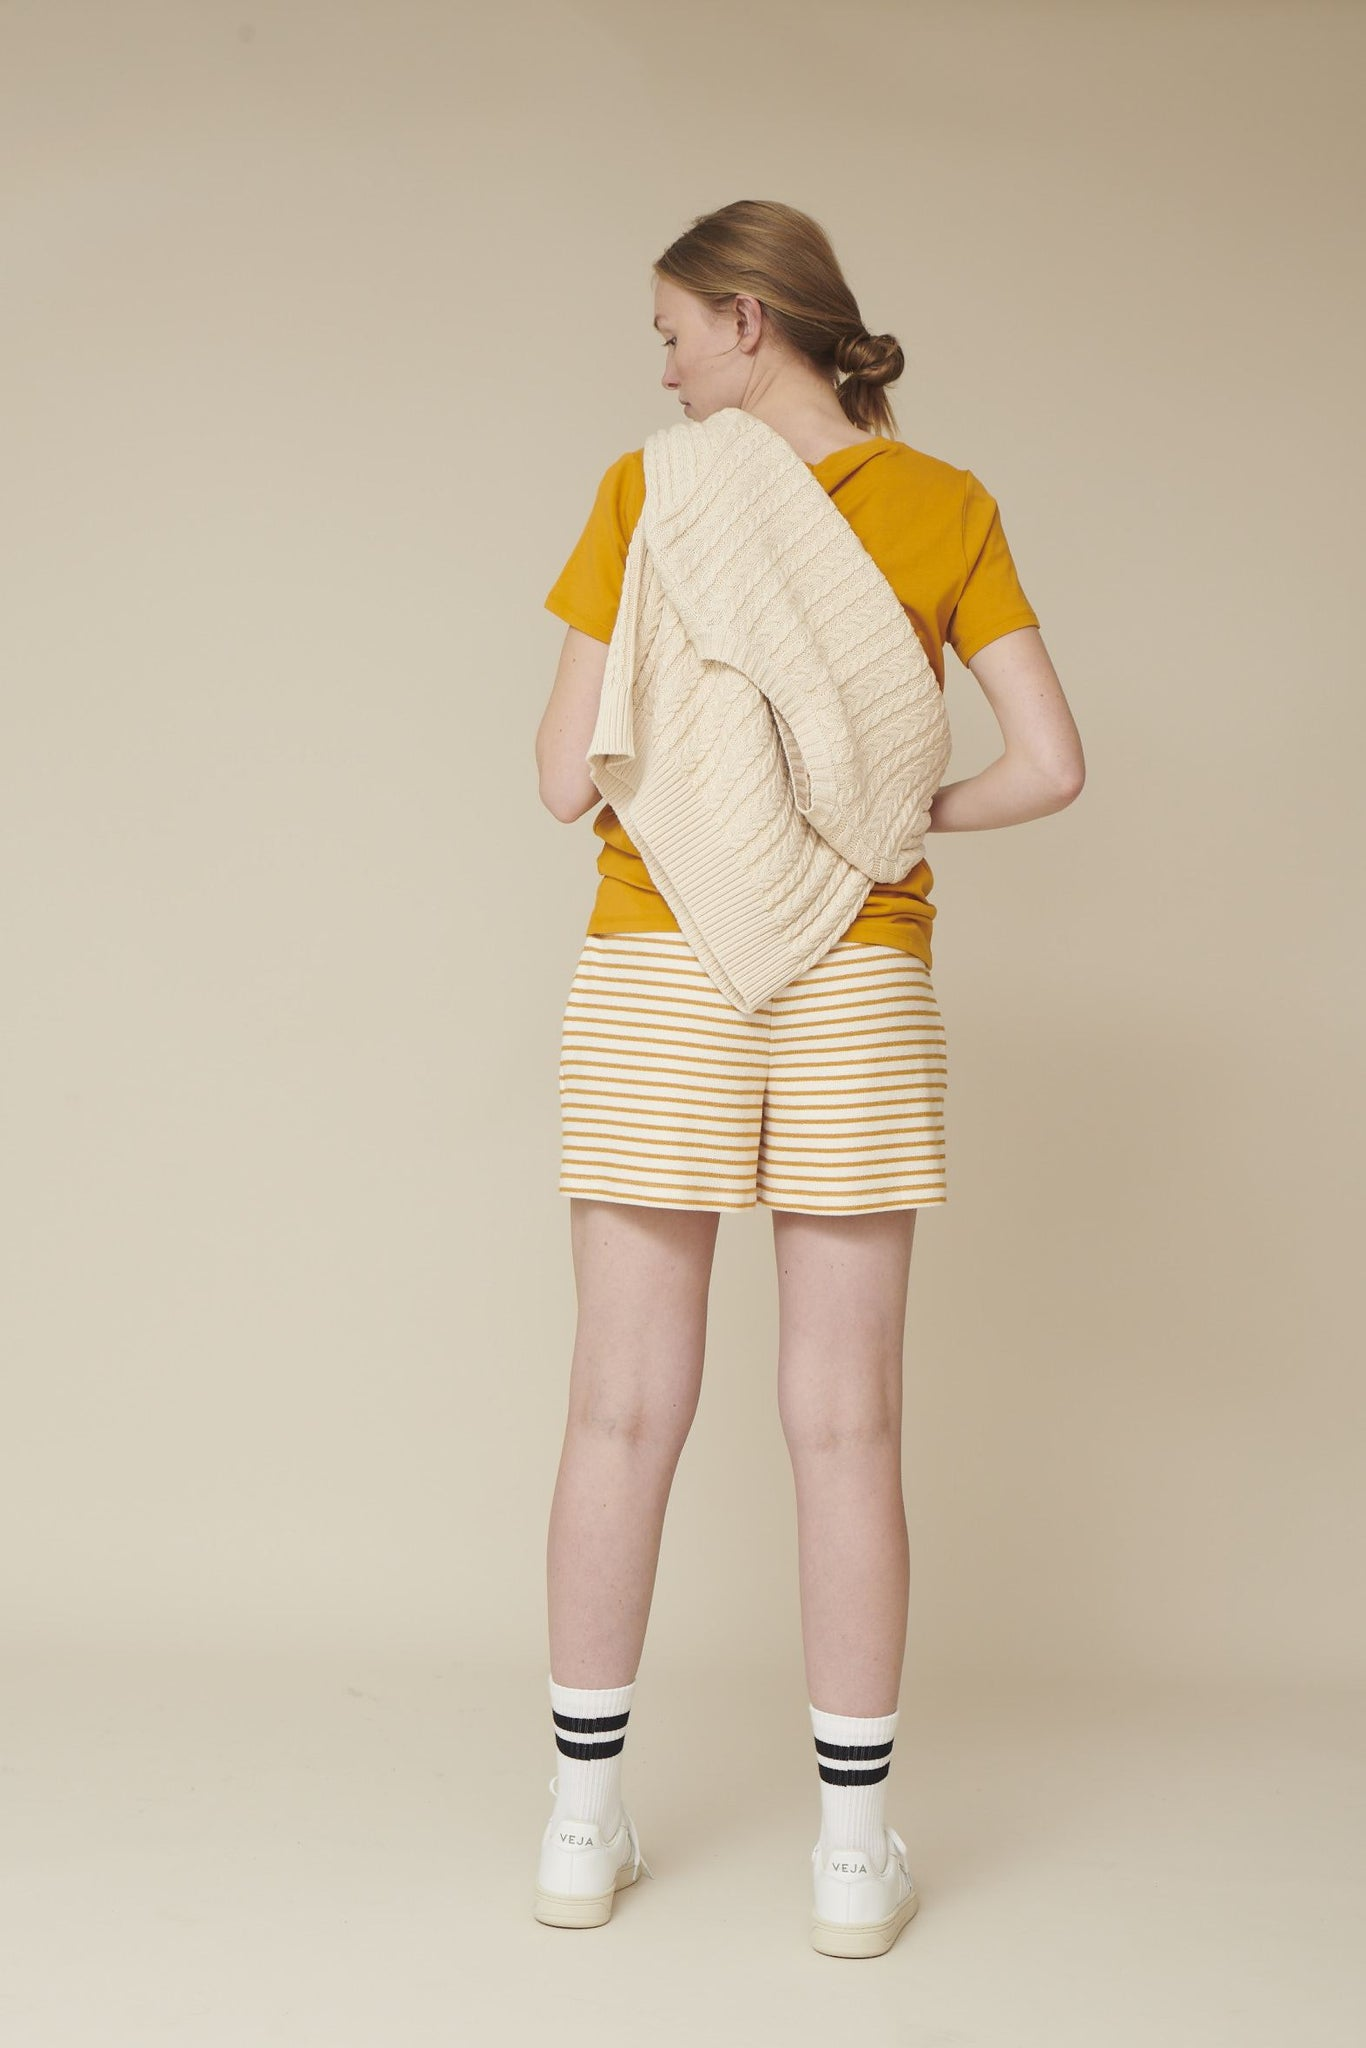 Basic Apparel // Vendela shorts - inca gold / offwhite